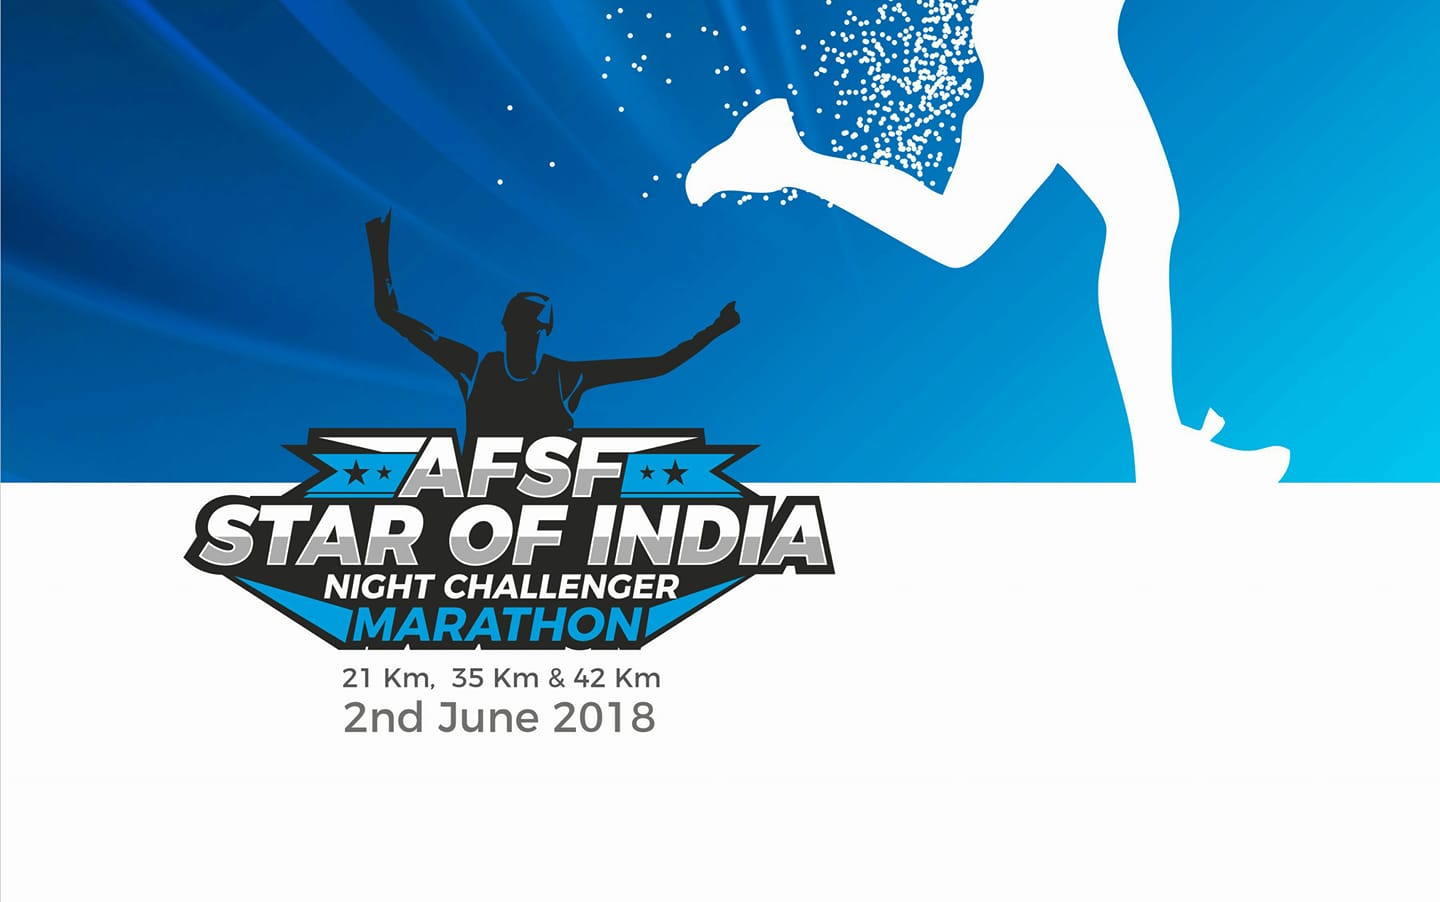 AFSF Star Of India Night Challenger Marathon